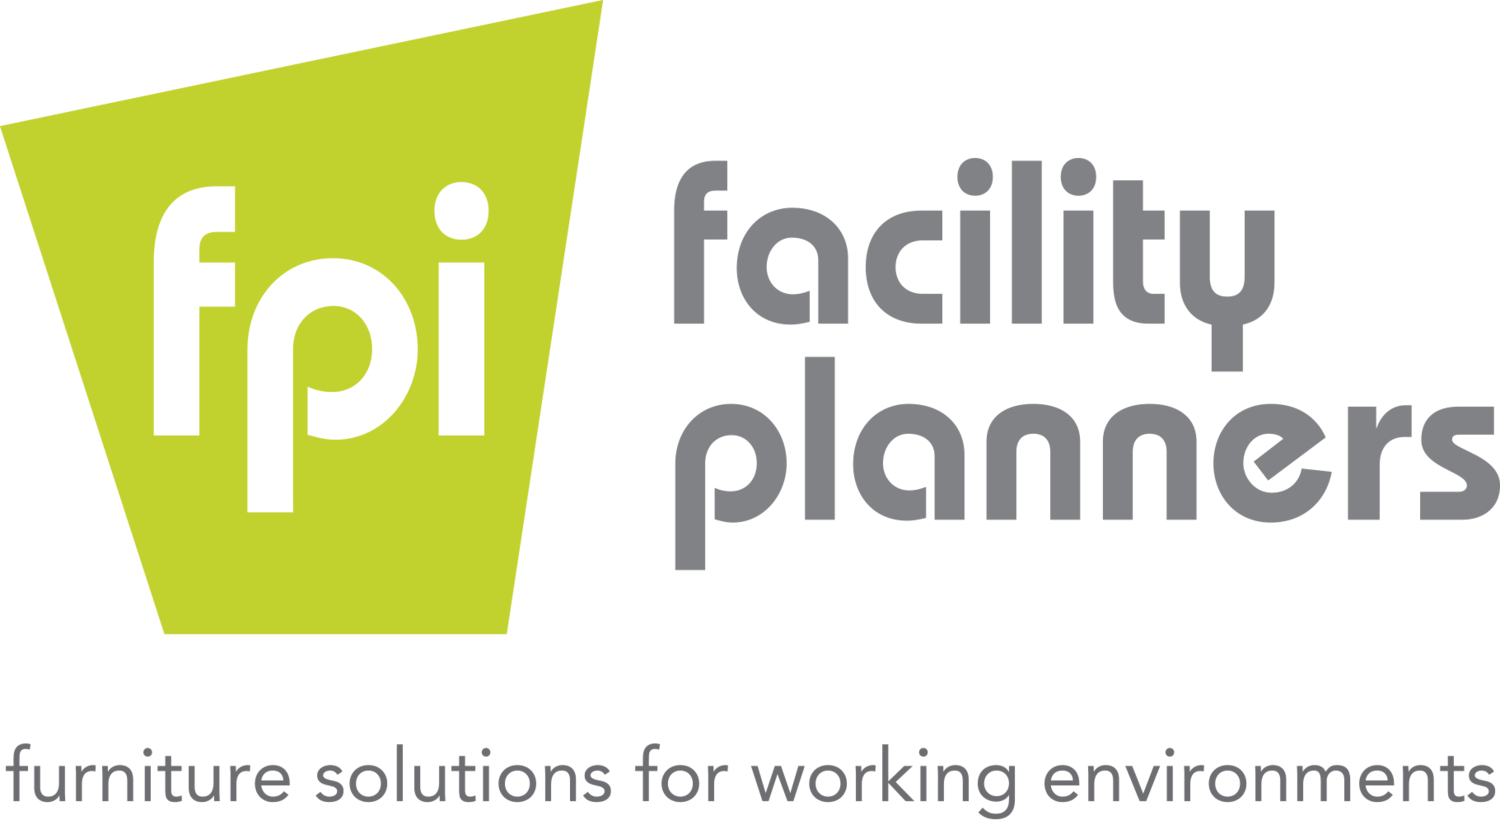 Facility Planners